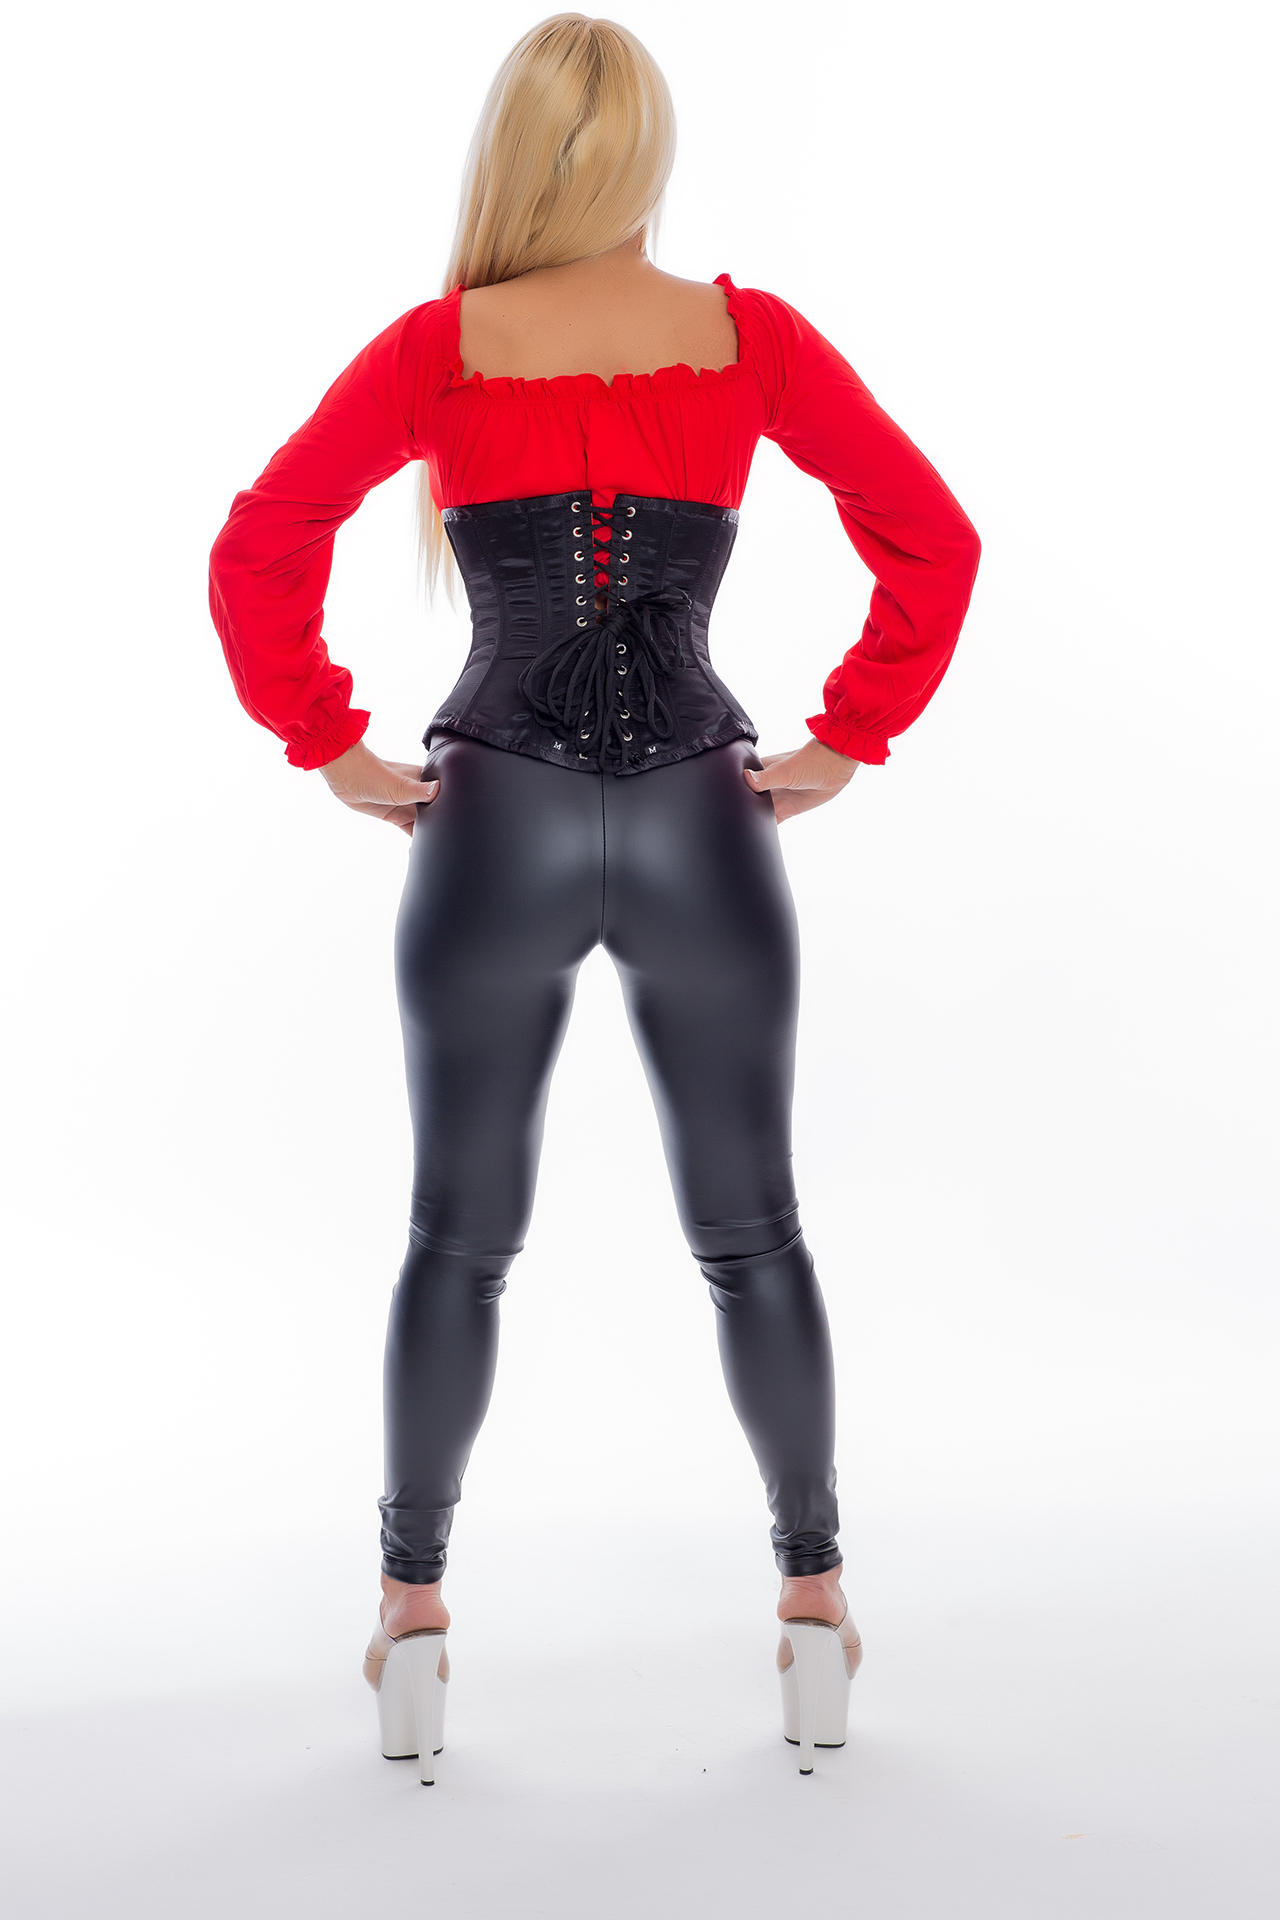 skåne escort latex leggings